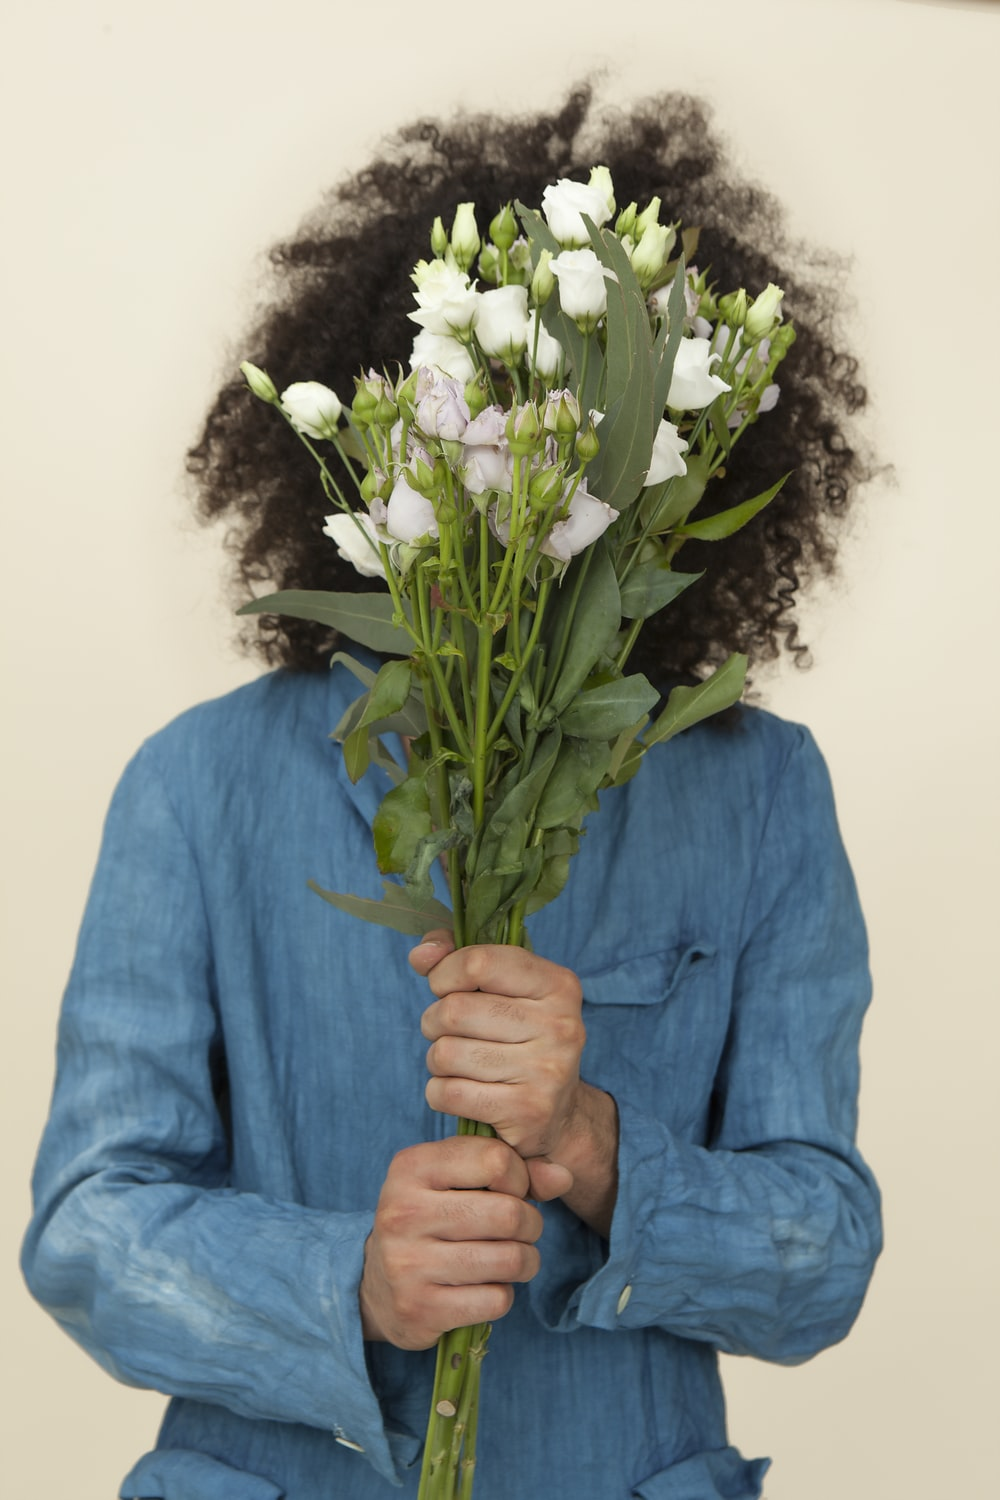 Selective Focus Photography Of Person Holding White Tulip Flower Bouquet Photo Free Plant Image On Unsplash